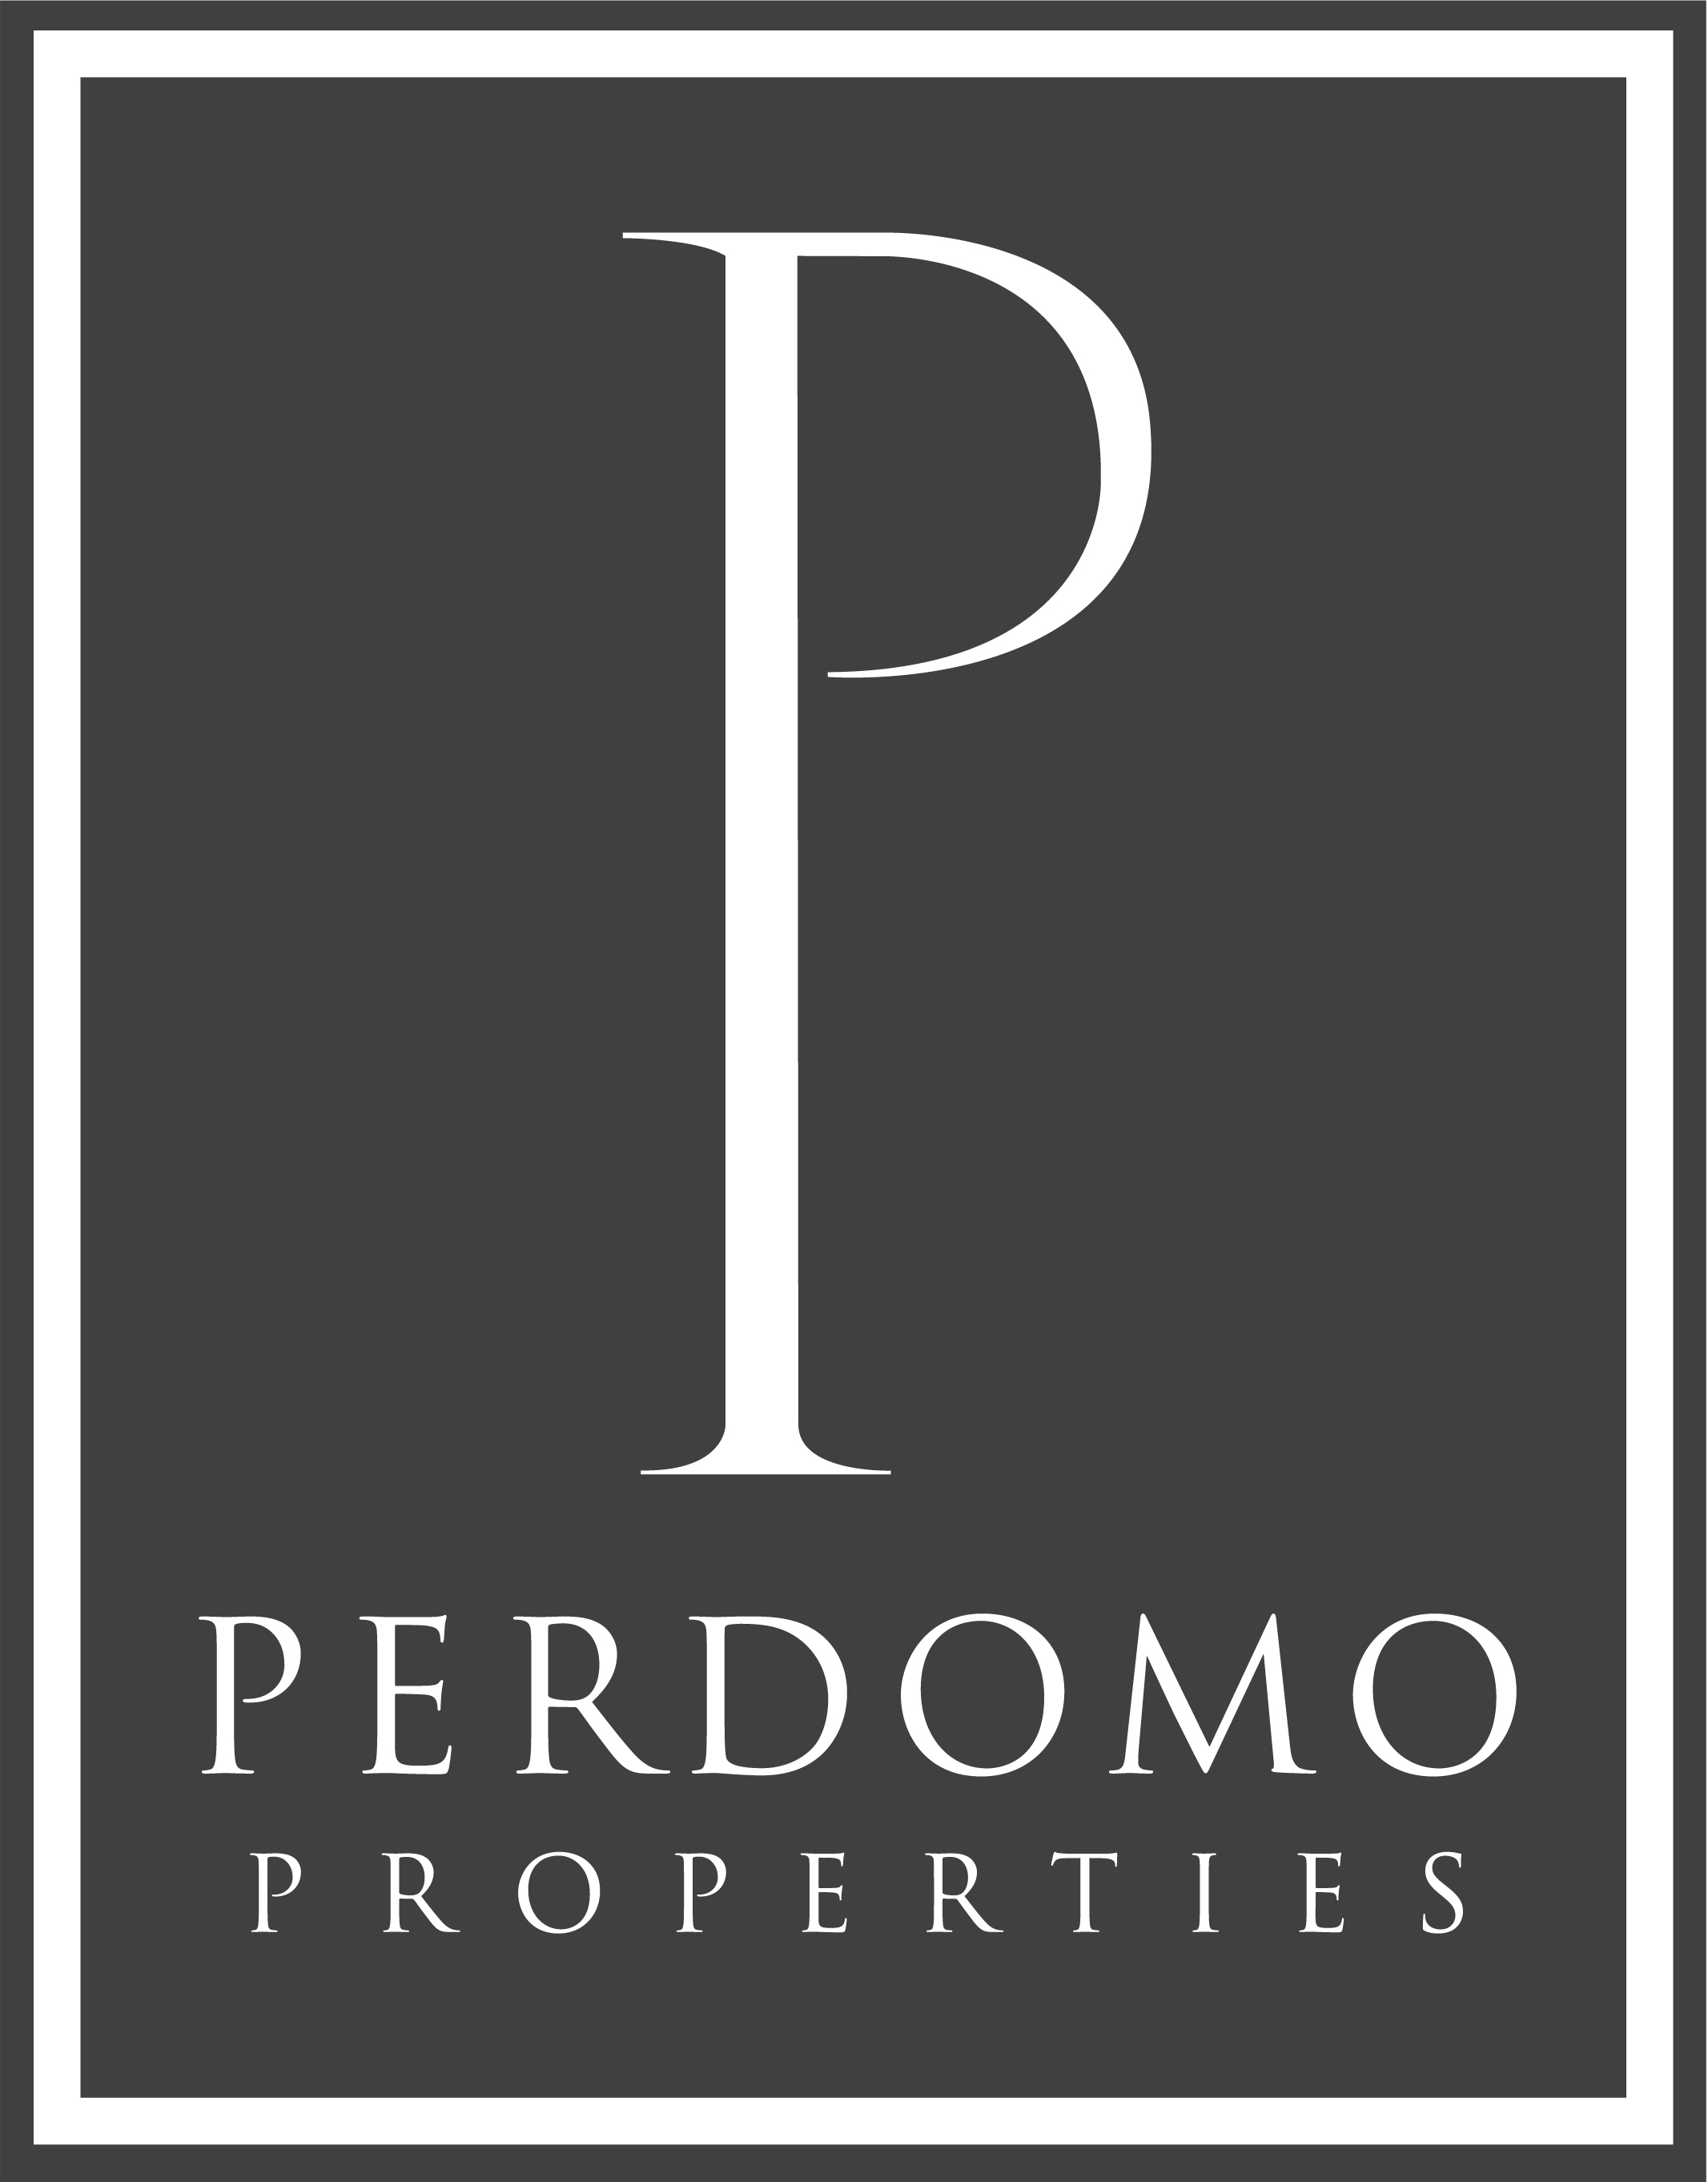 PERDOMO New Logo UPDATED COLOR